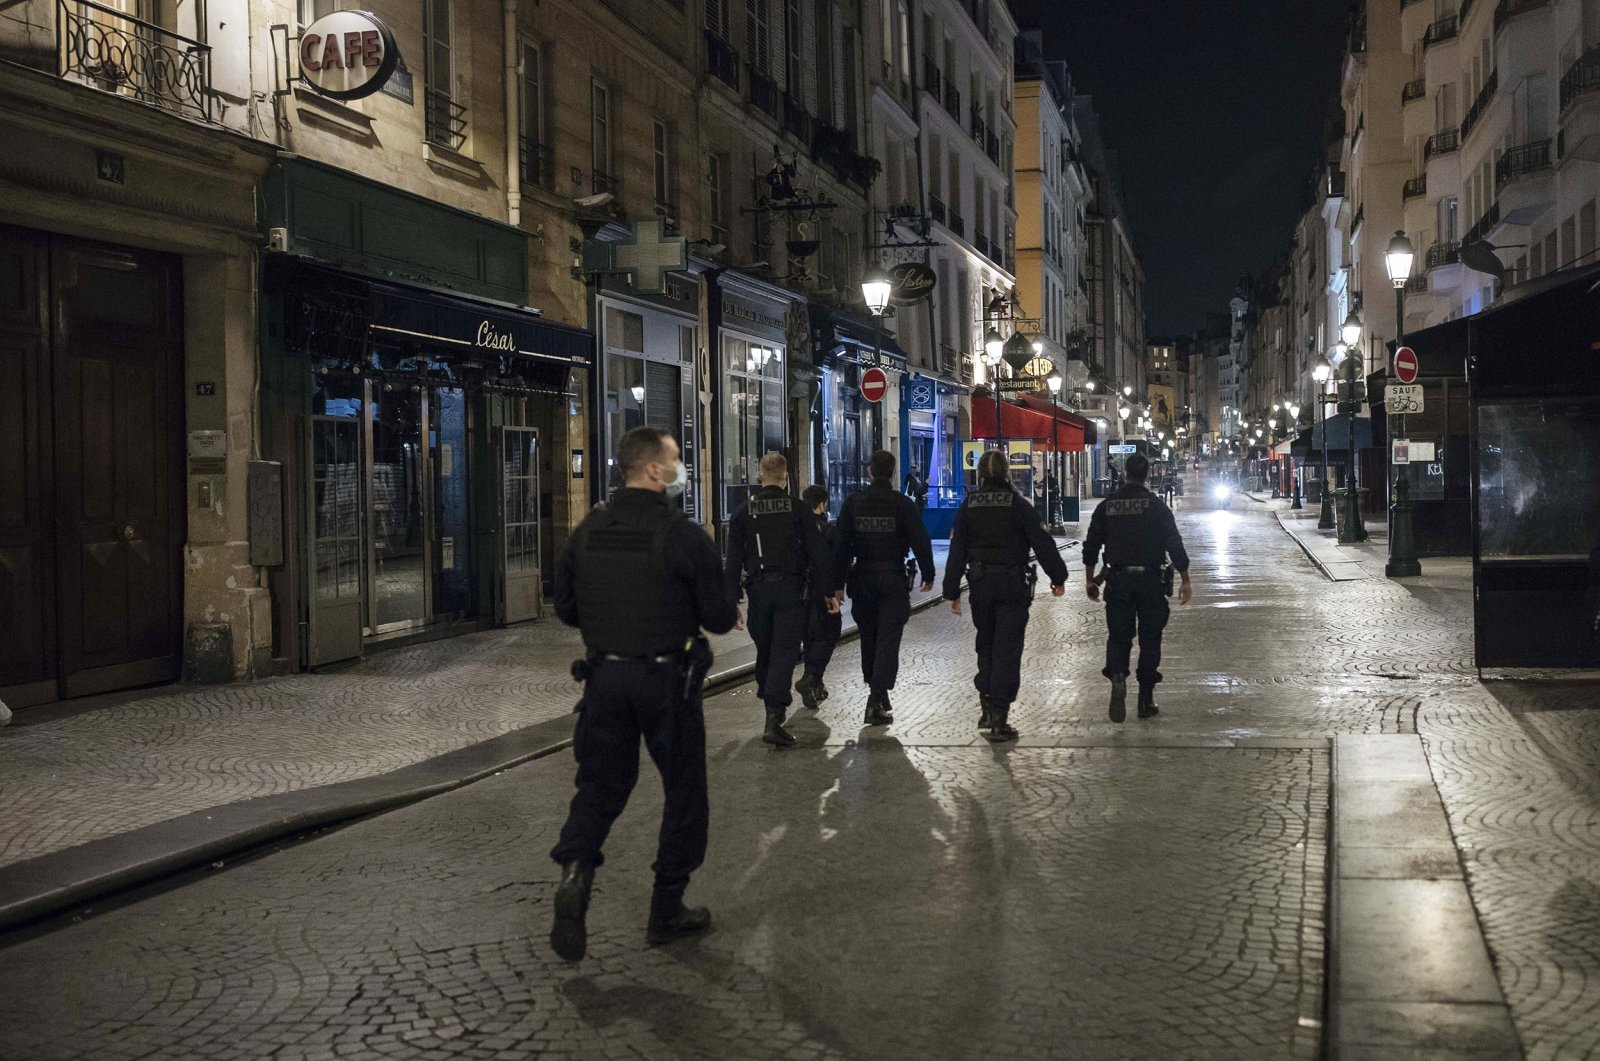 Police patrol in the streets as the curfew starts in Paris, Oct. 17, 2020. (AP Photo)